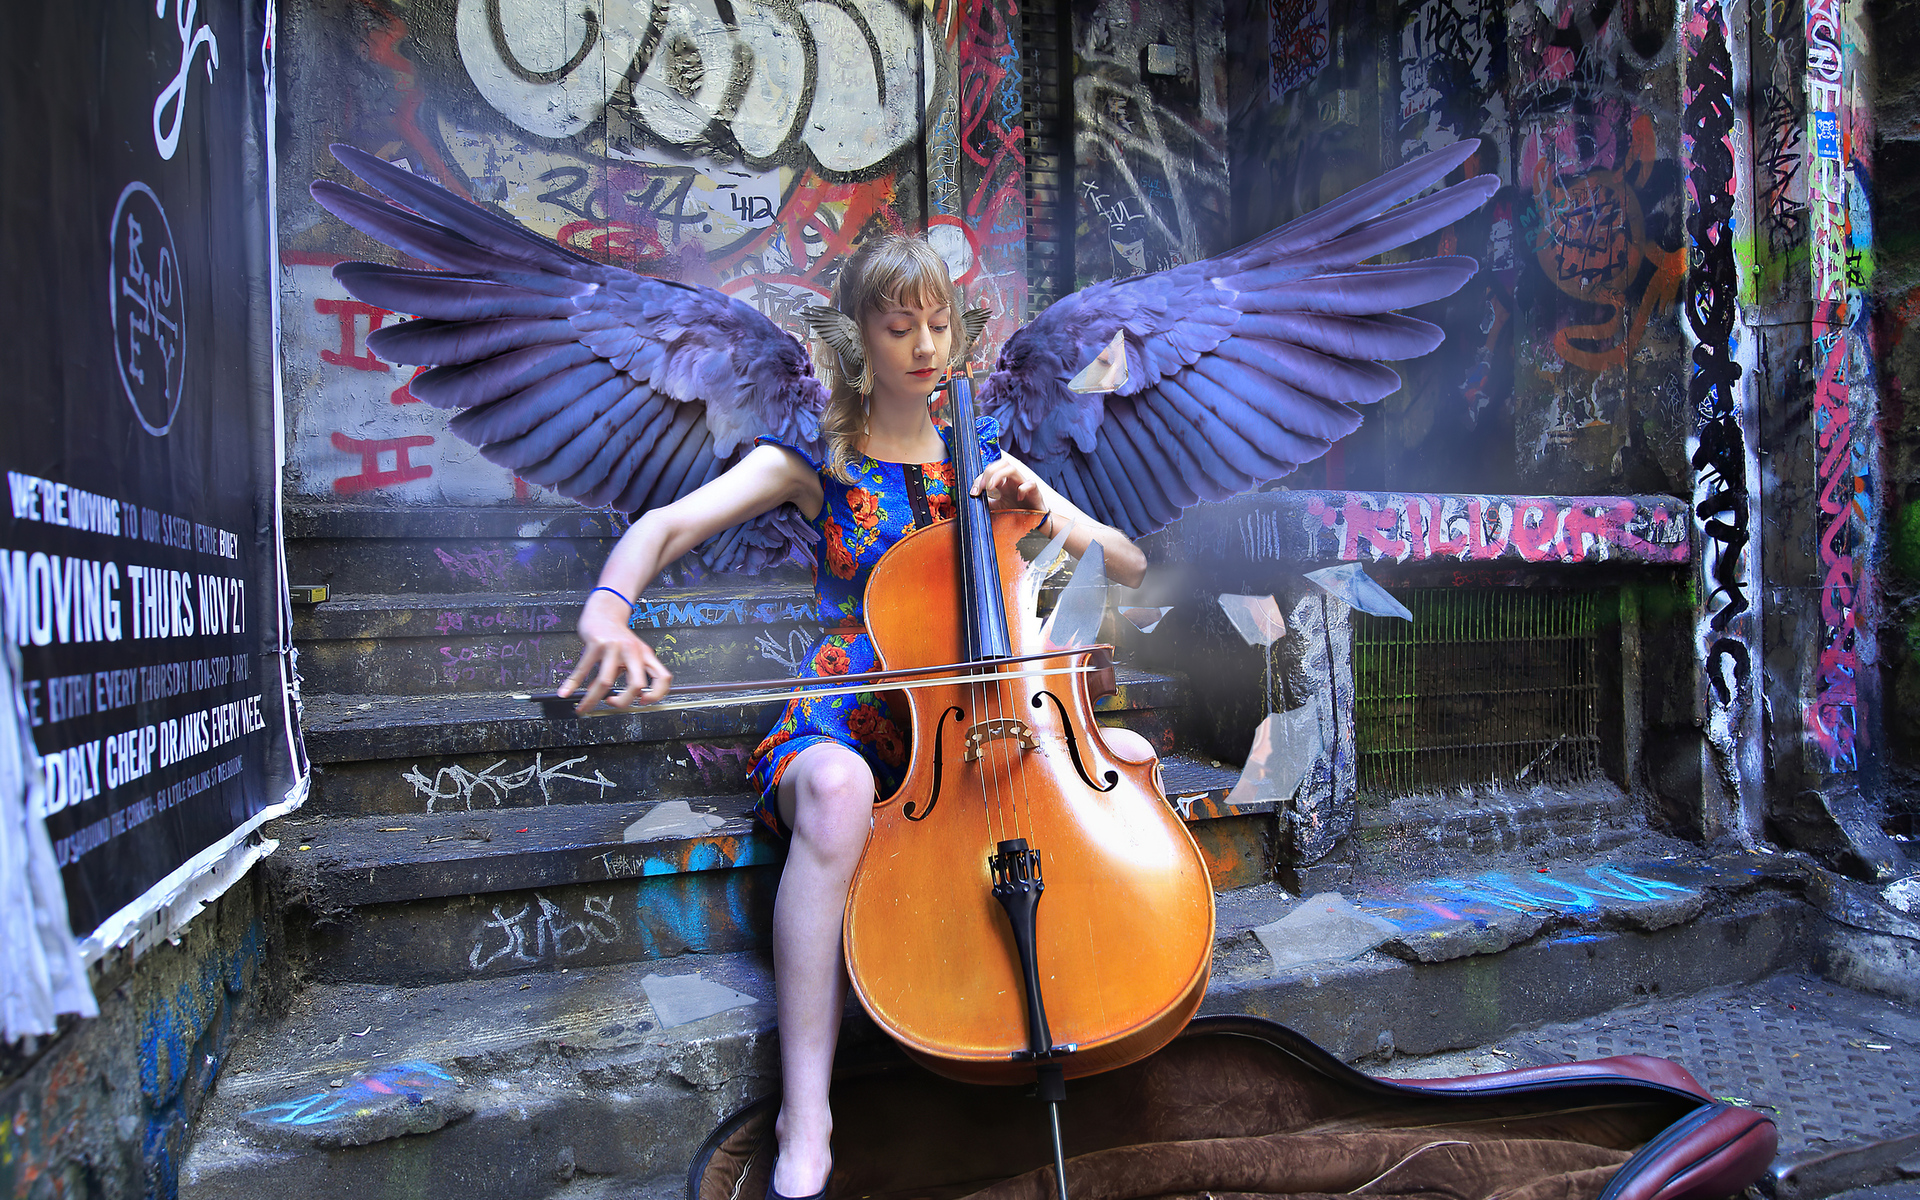 girl-angel-playing-violin-v4.jpg